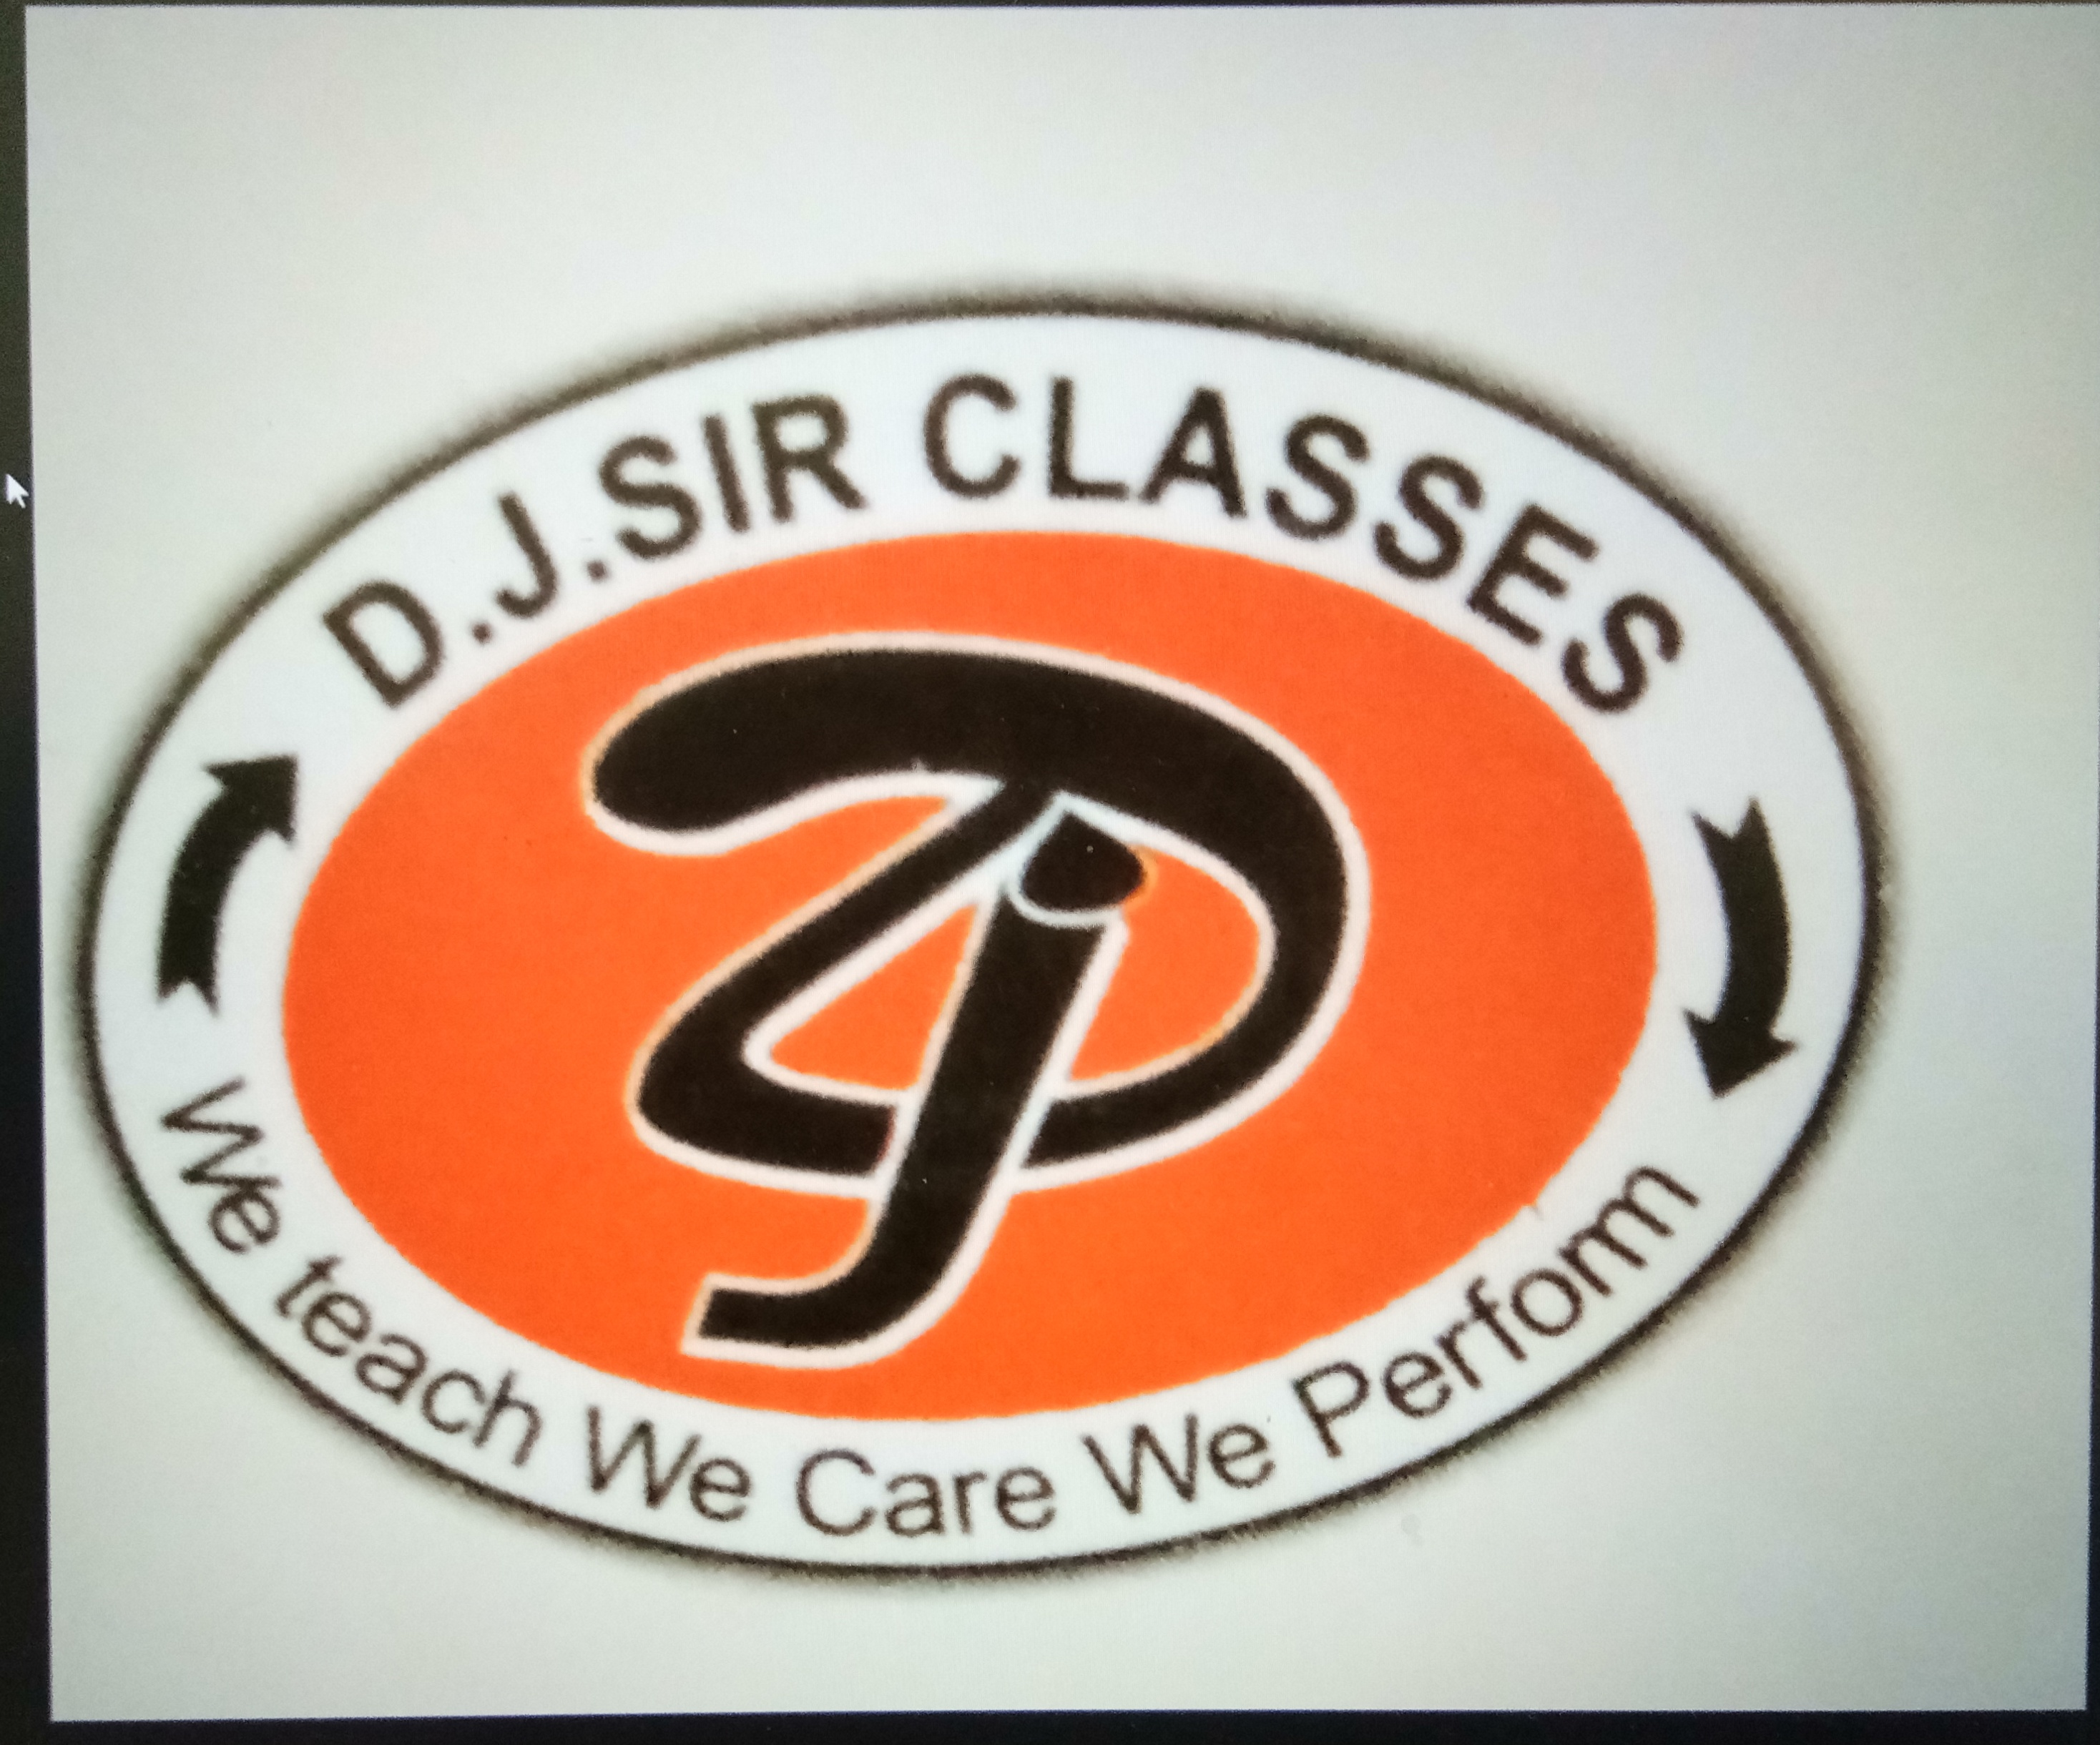 Logo of DJ Sir Classes in Kota